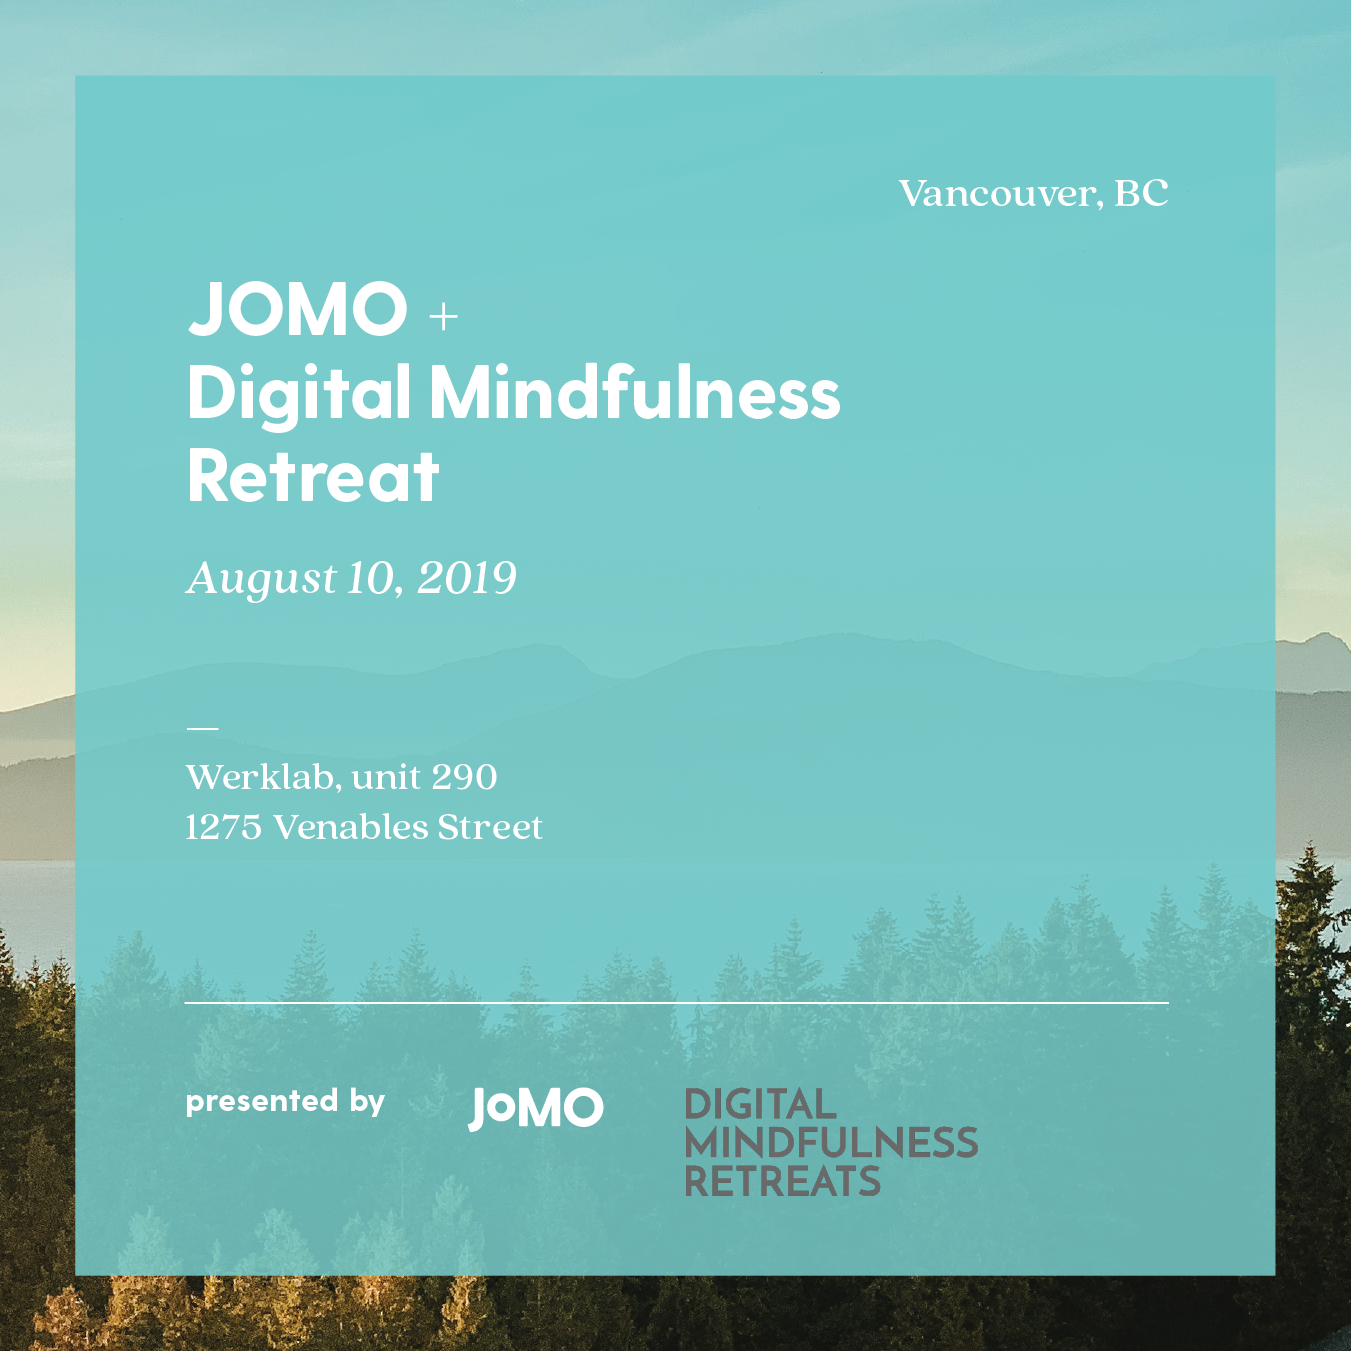 JOMO_VancouverJDMRetreat_Aug2019_Final_IG_Feed.png